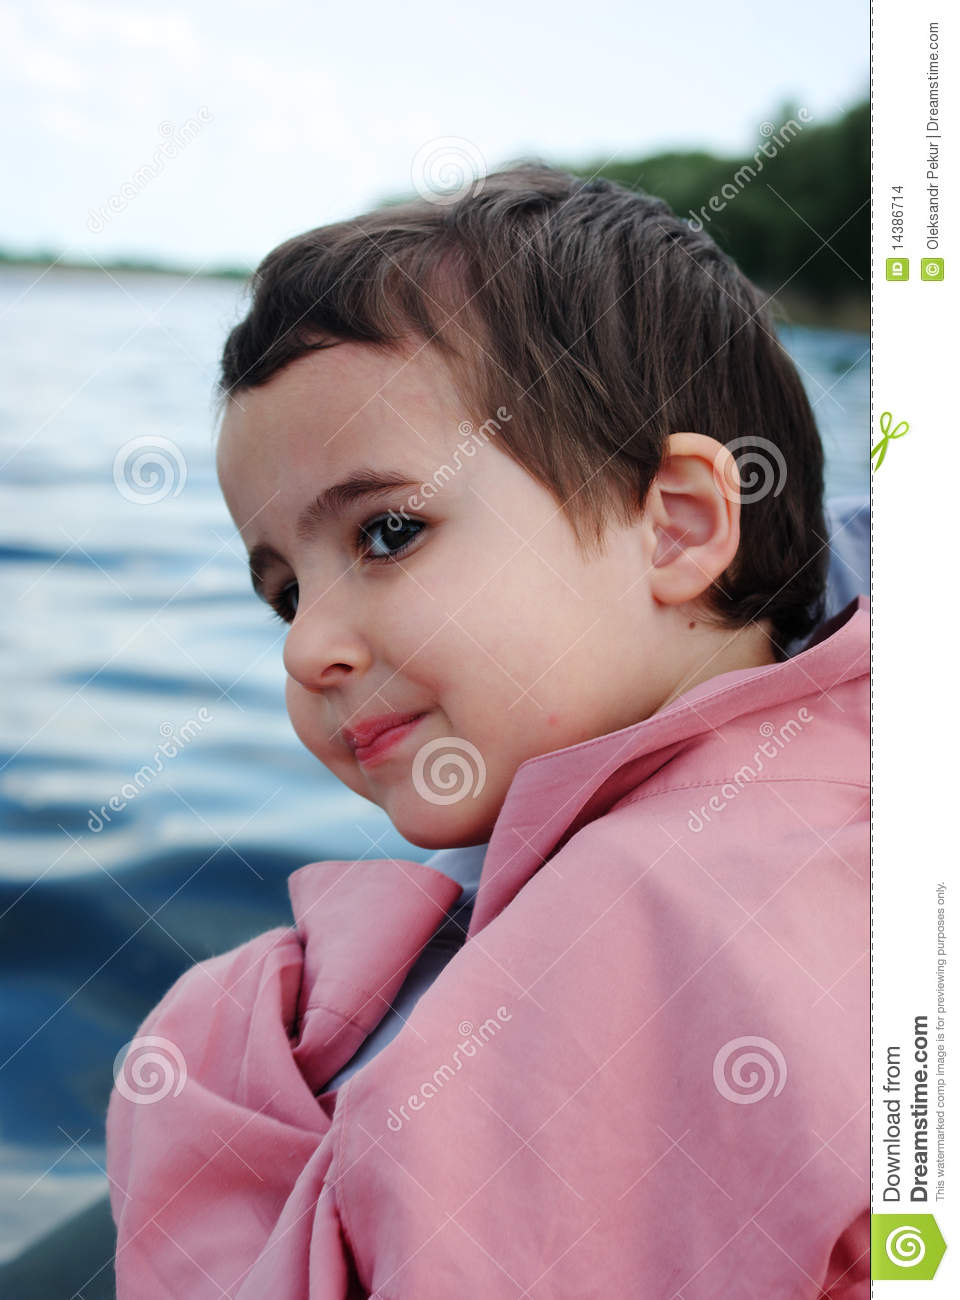 Little Boy With Suitcase Smiling Royalty Free Stock Photo ...  Little Boy Traveling